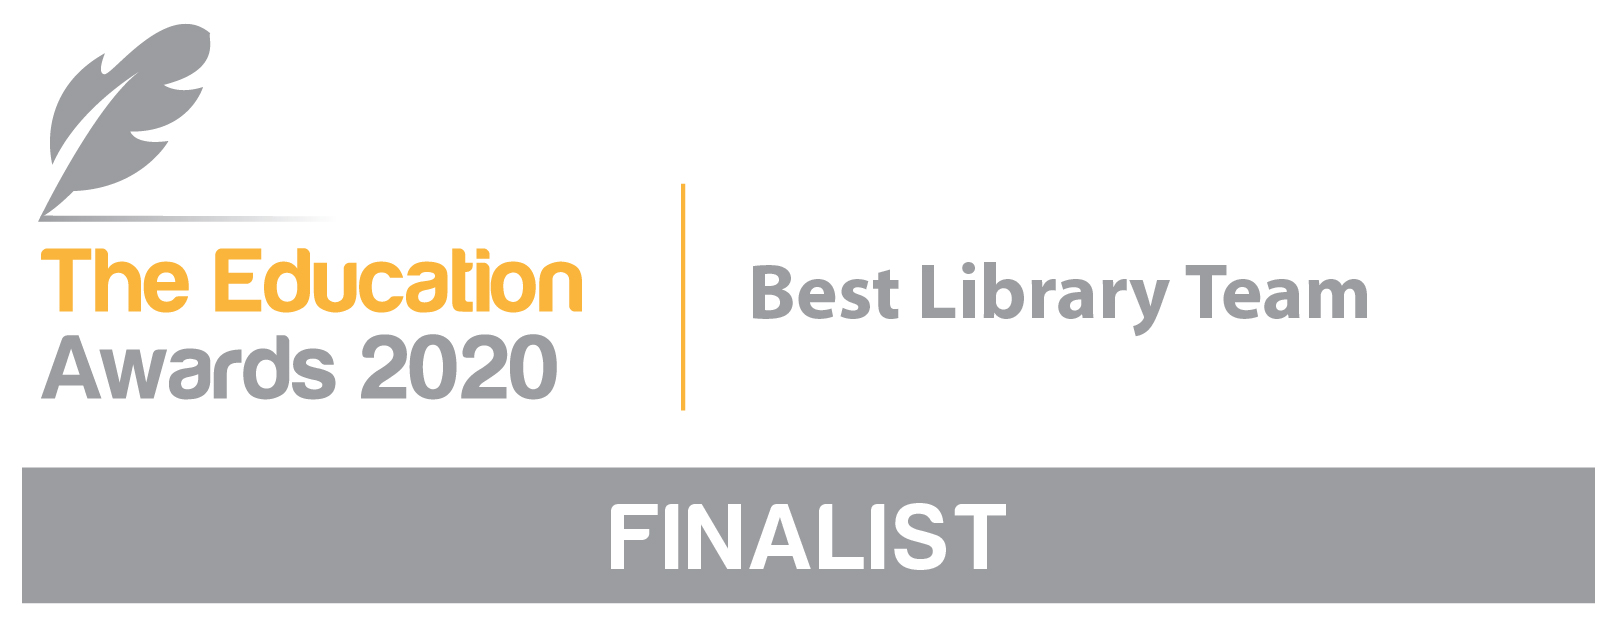 Education Awards 2020 Best Library Team Finalist